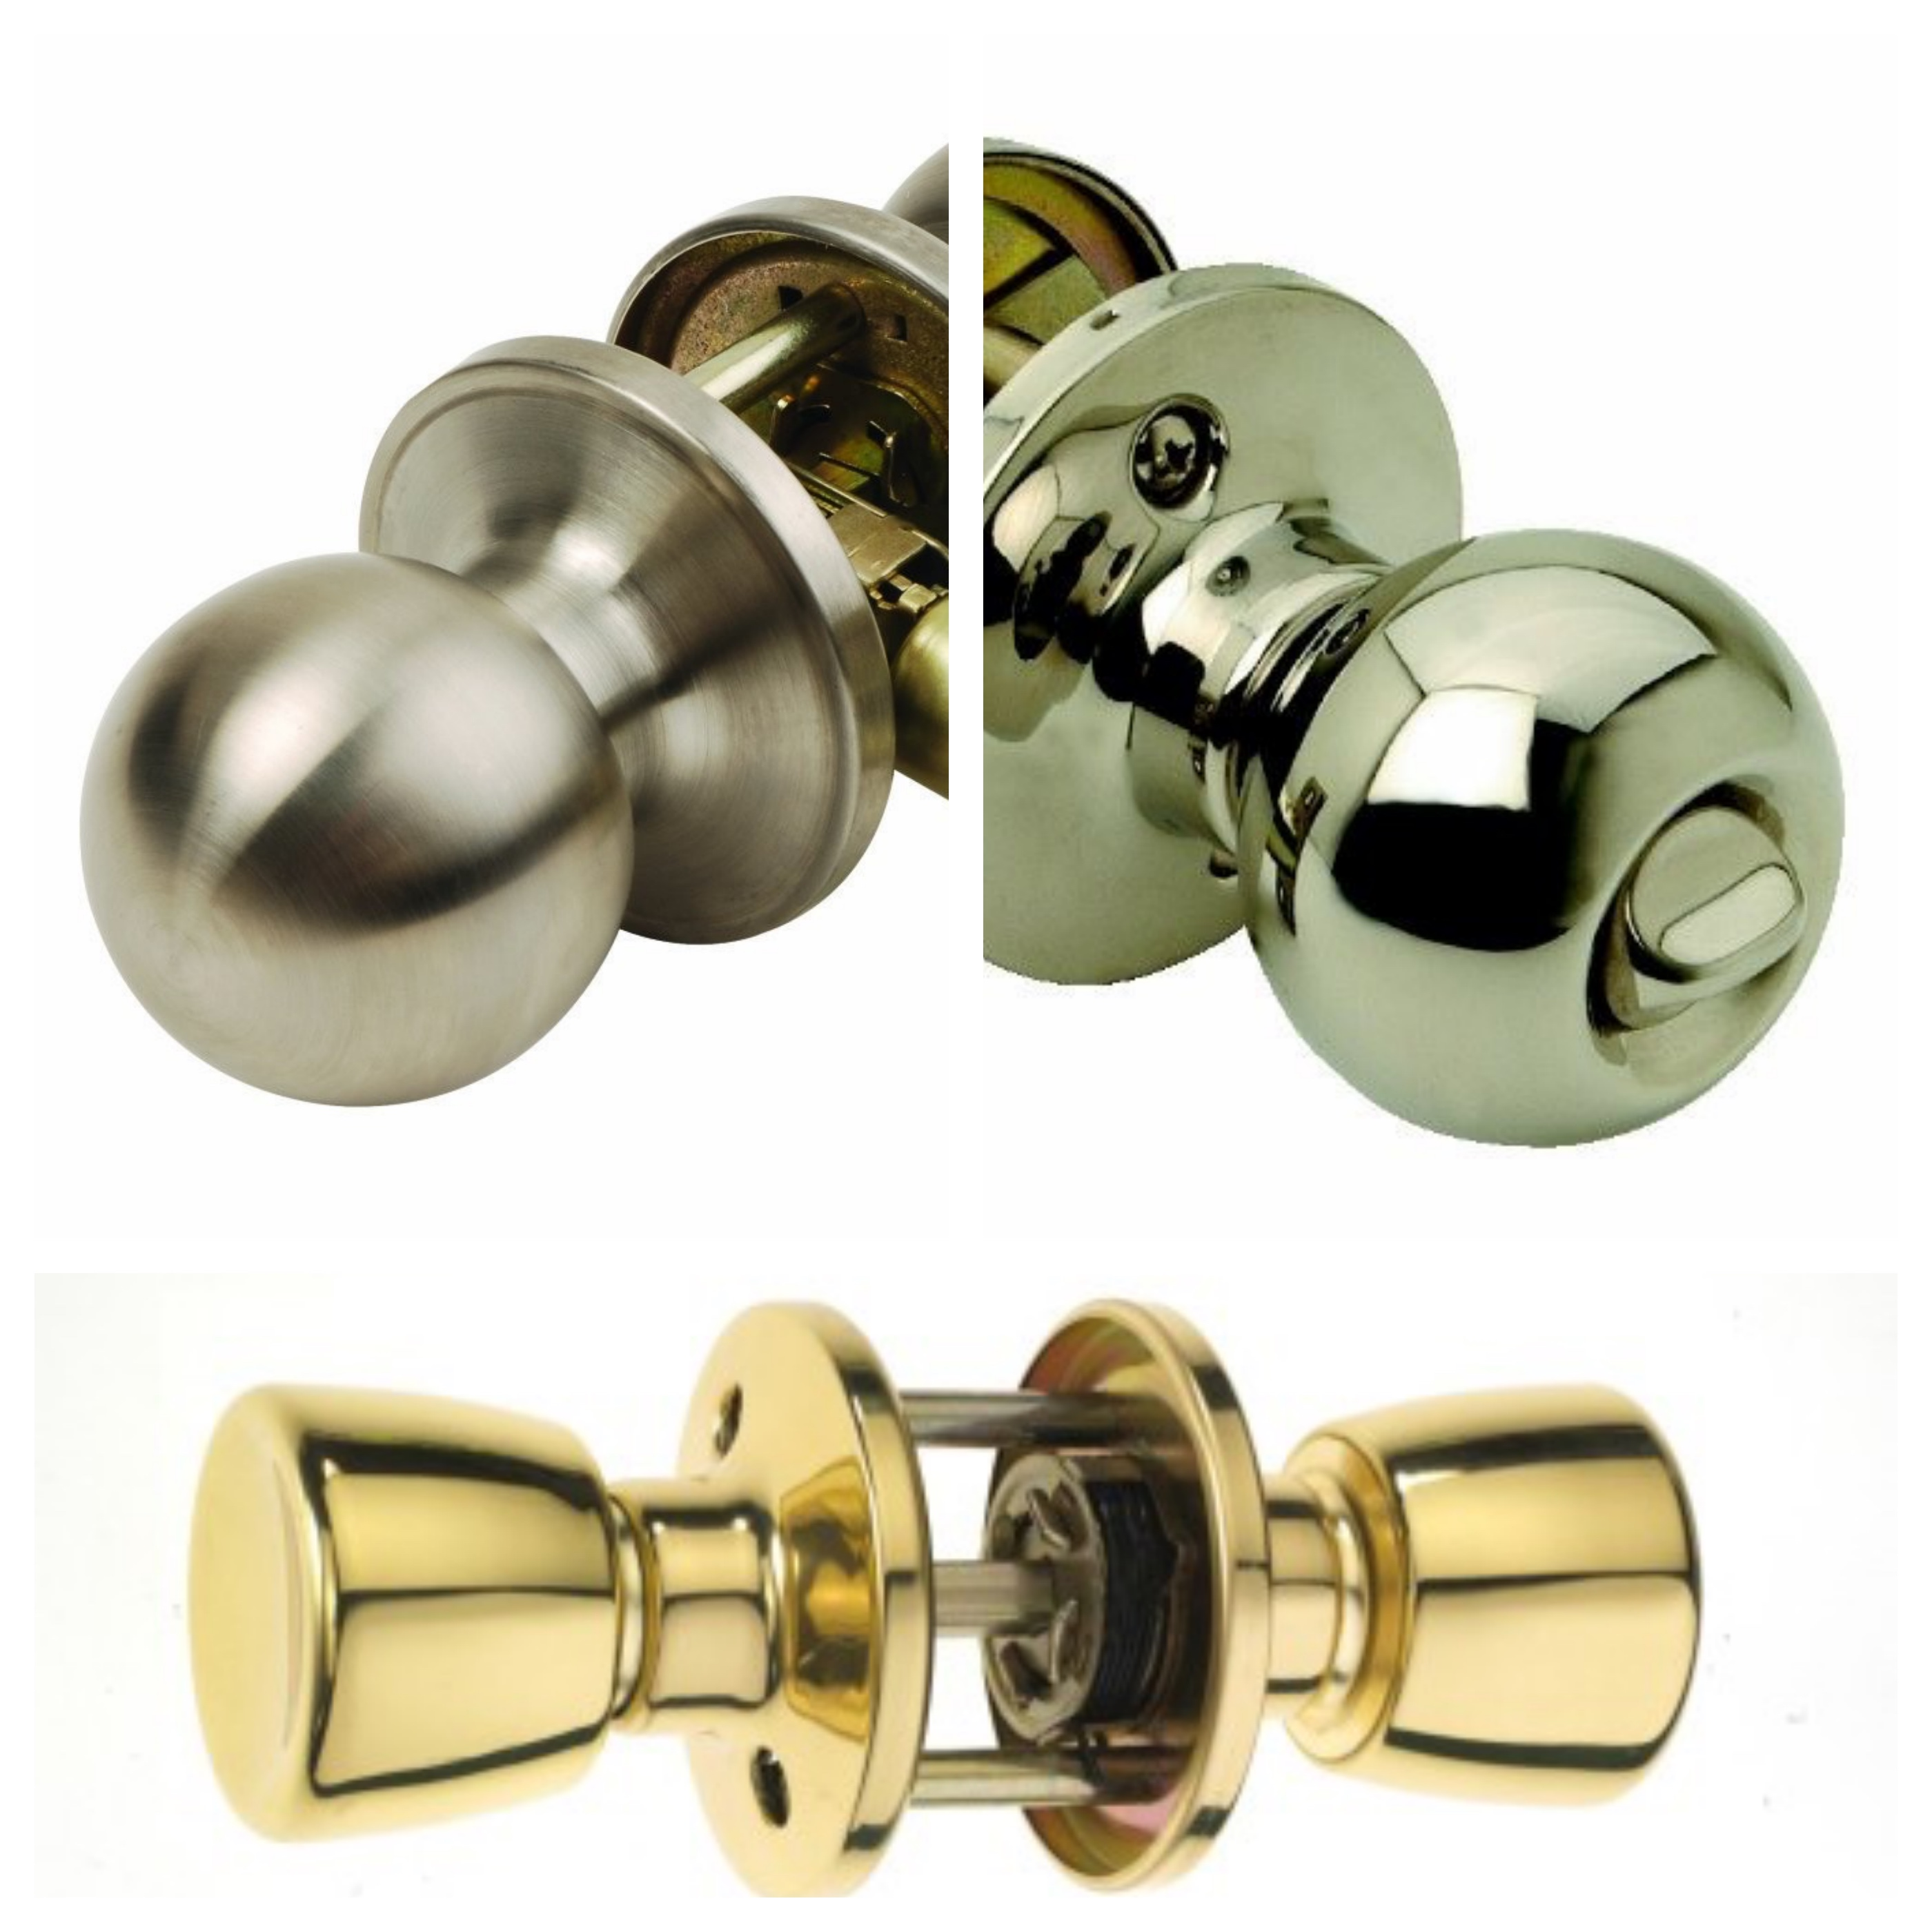 More Handles Blog - Large bore-holes in your door? New replacement ...